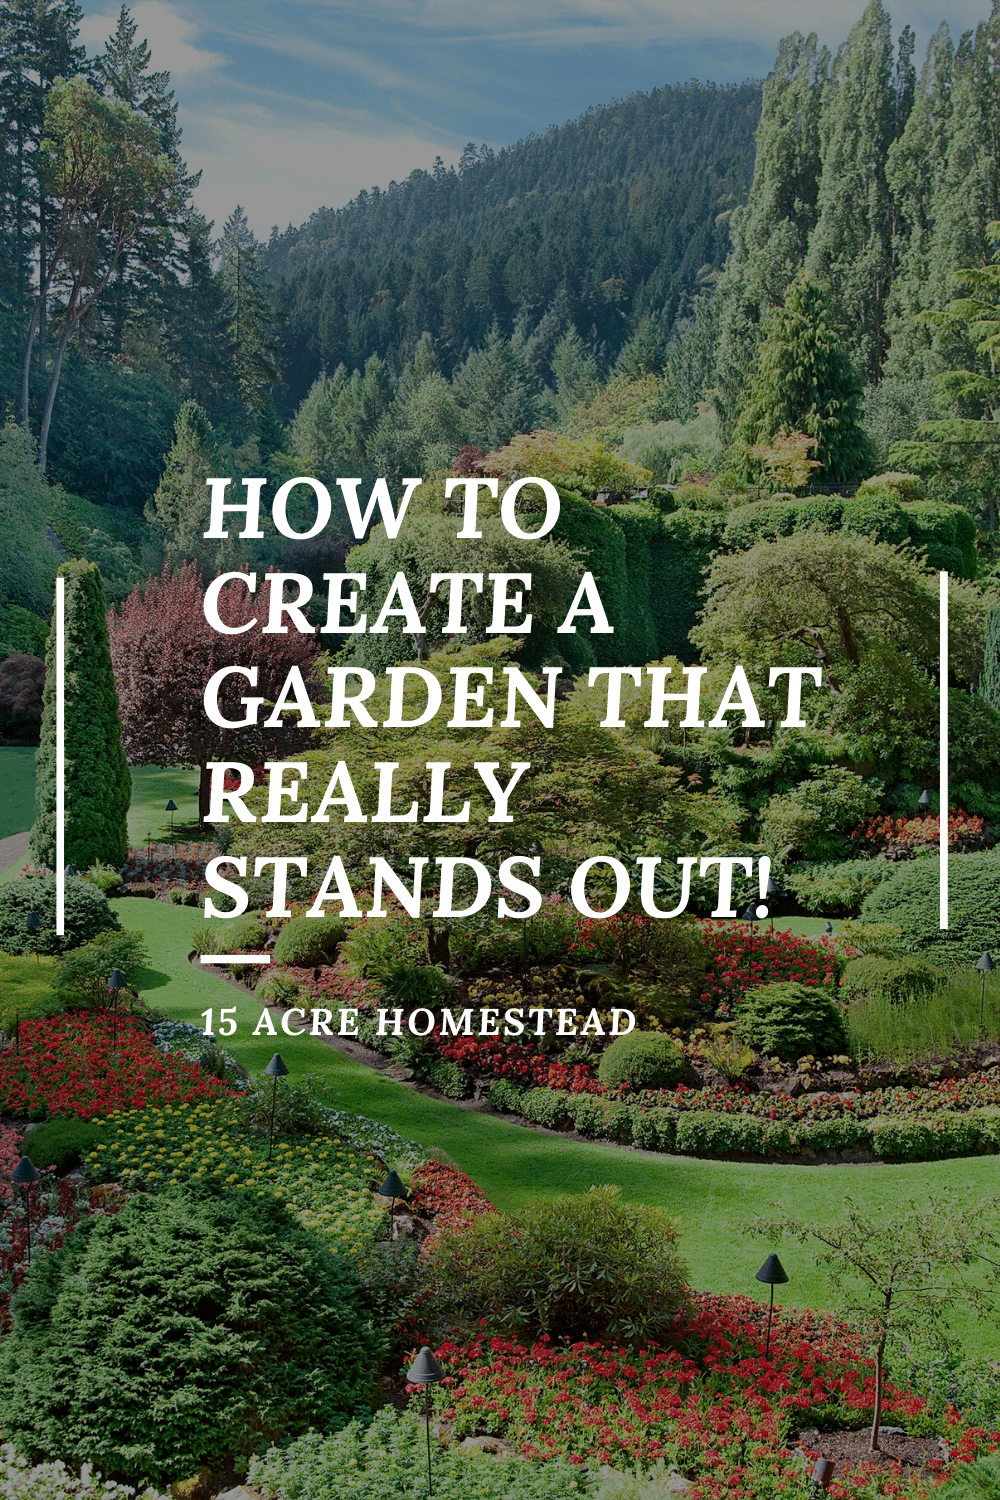 Check out these tips if you plan on creating a garden on your homestead!